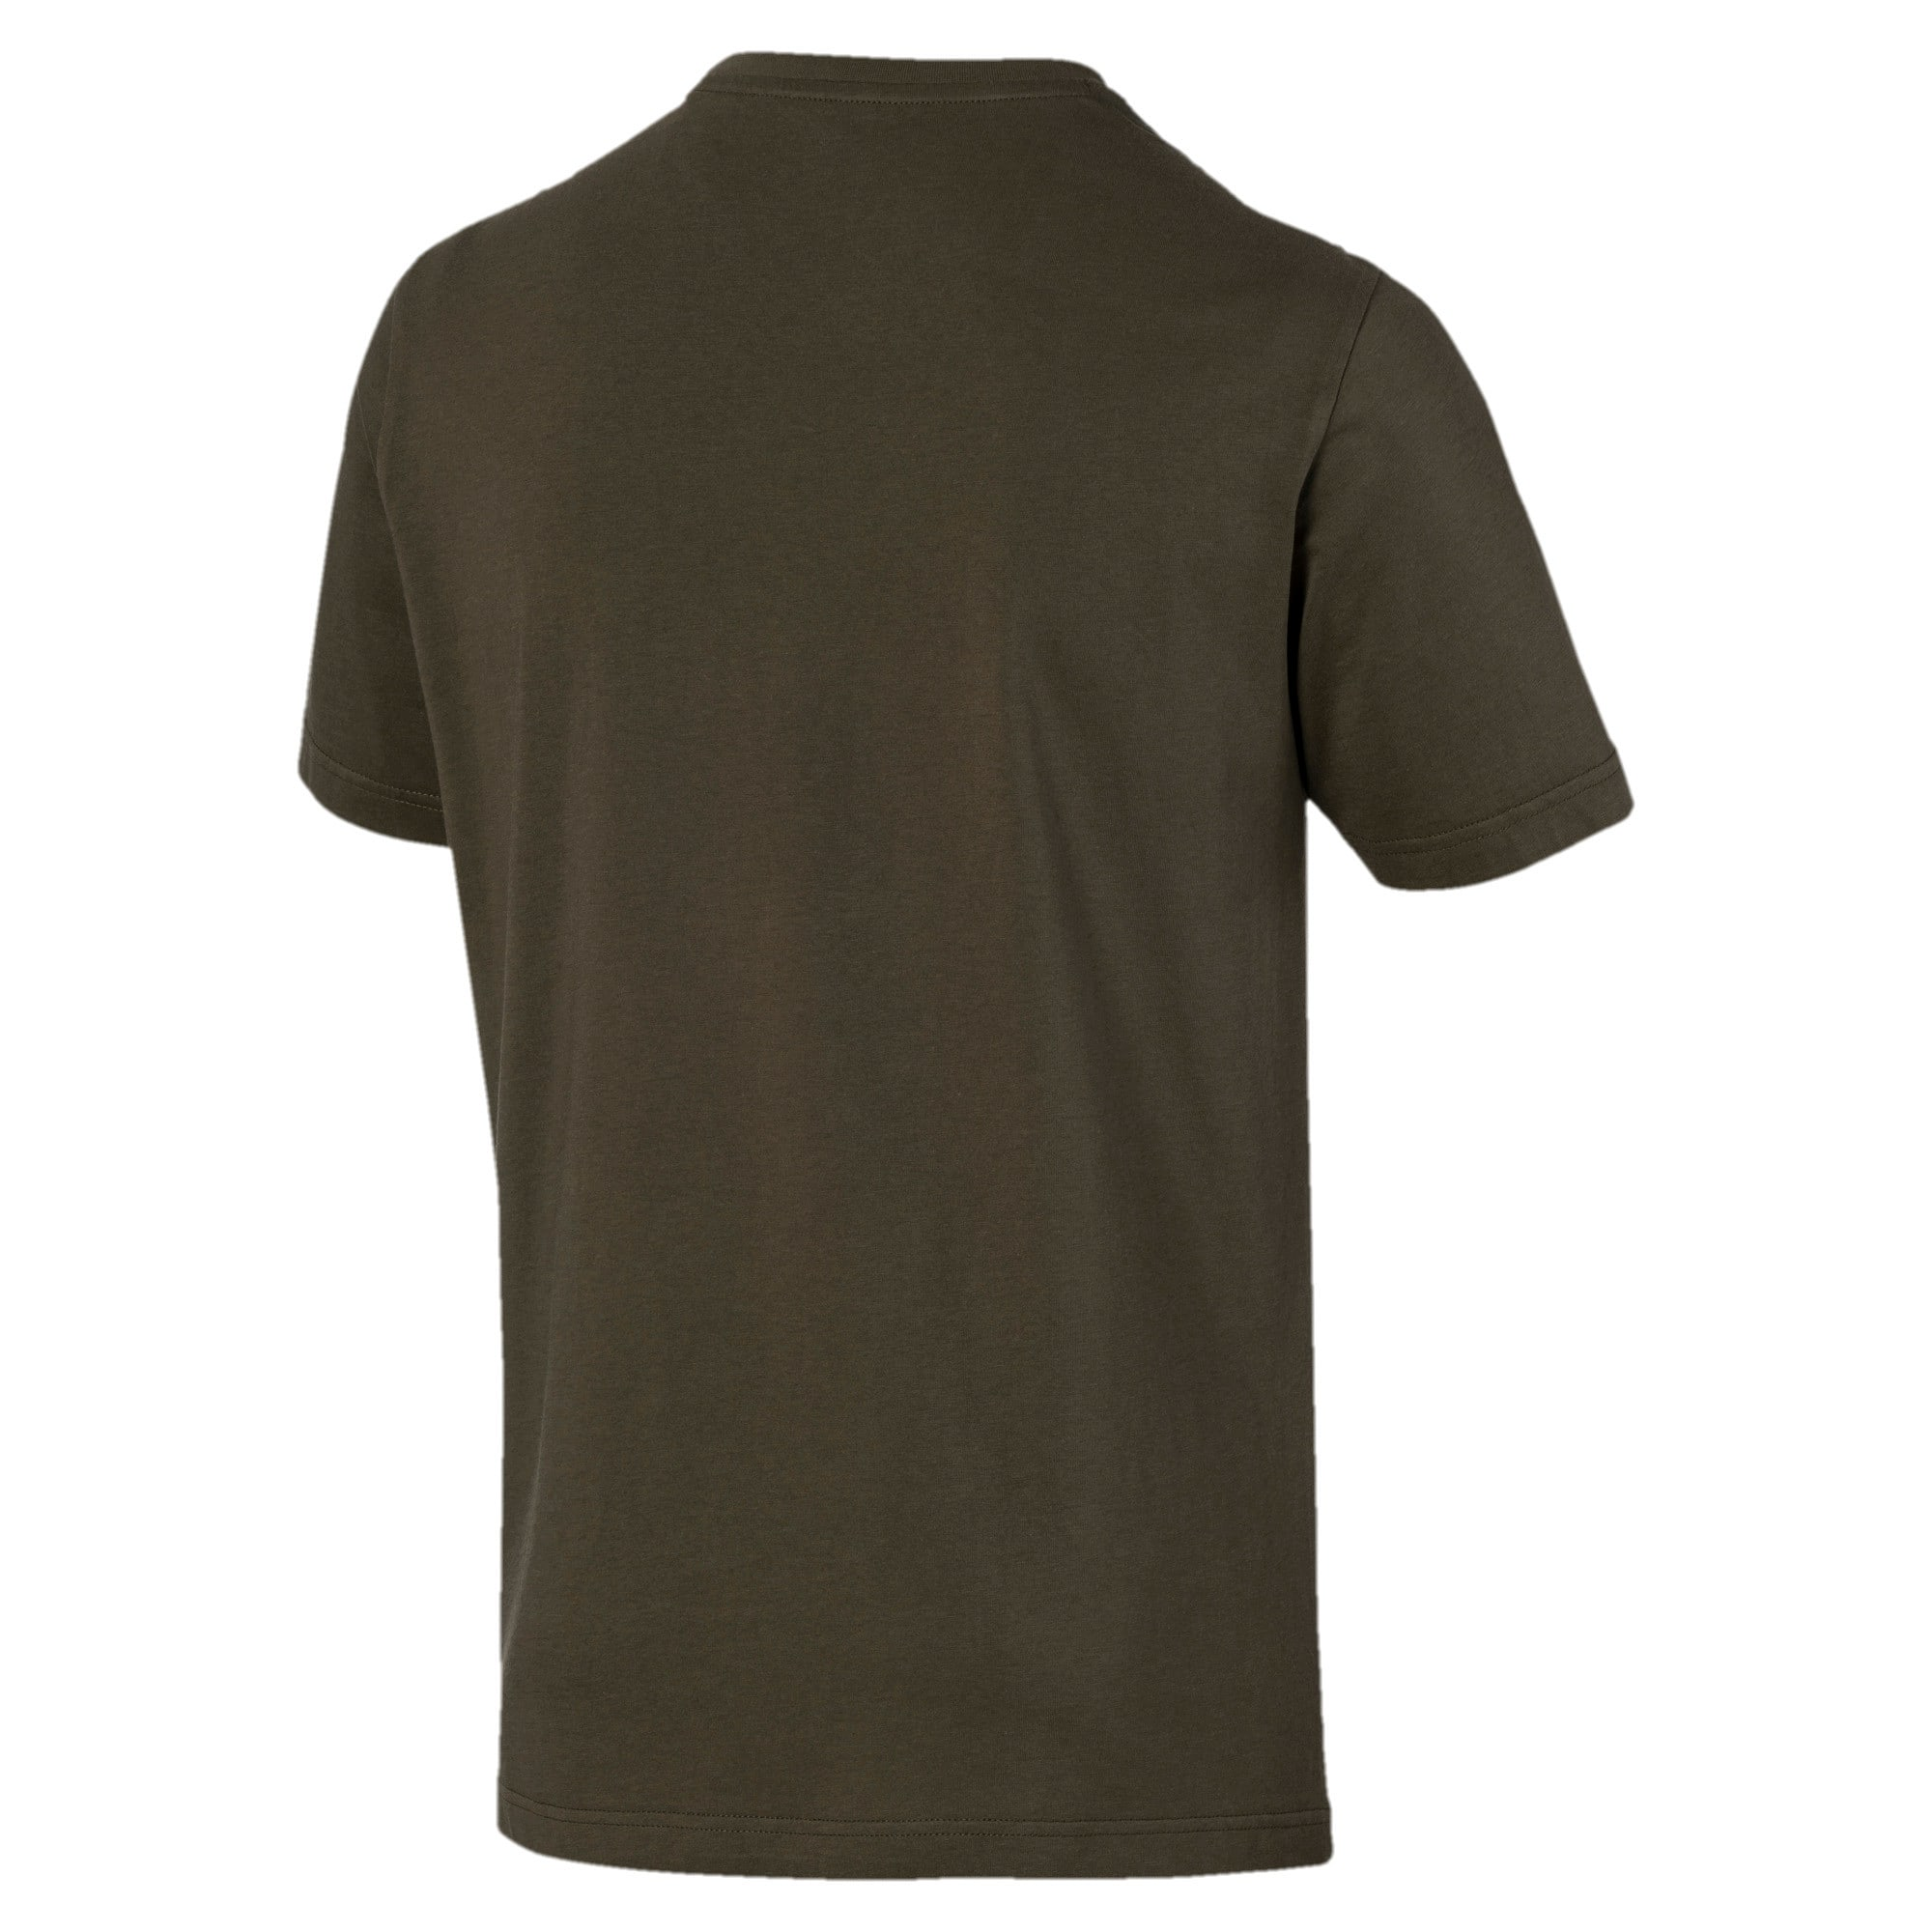 Thumbnail 5 of Rebel Camo Filled Men's Tee, Forest Night, medium-IND